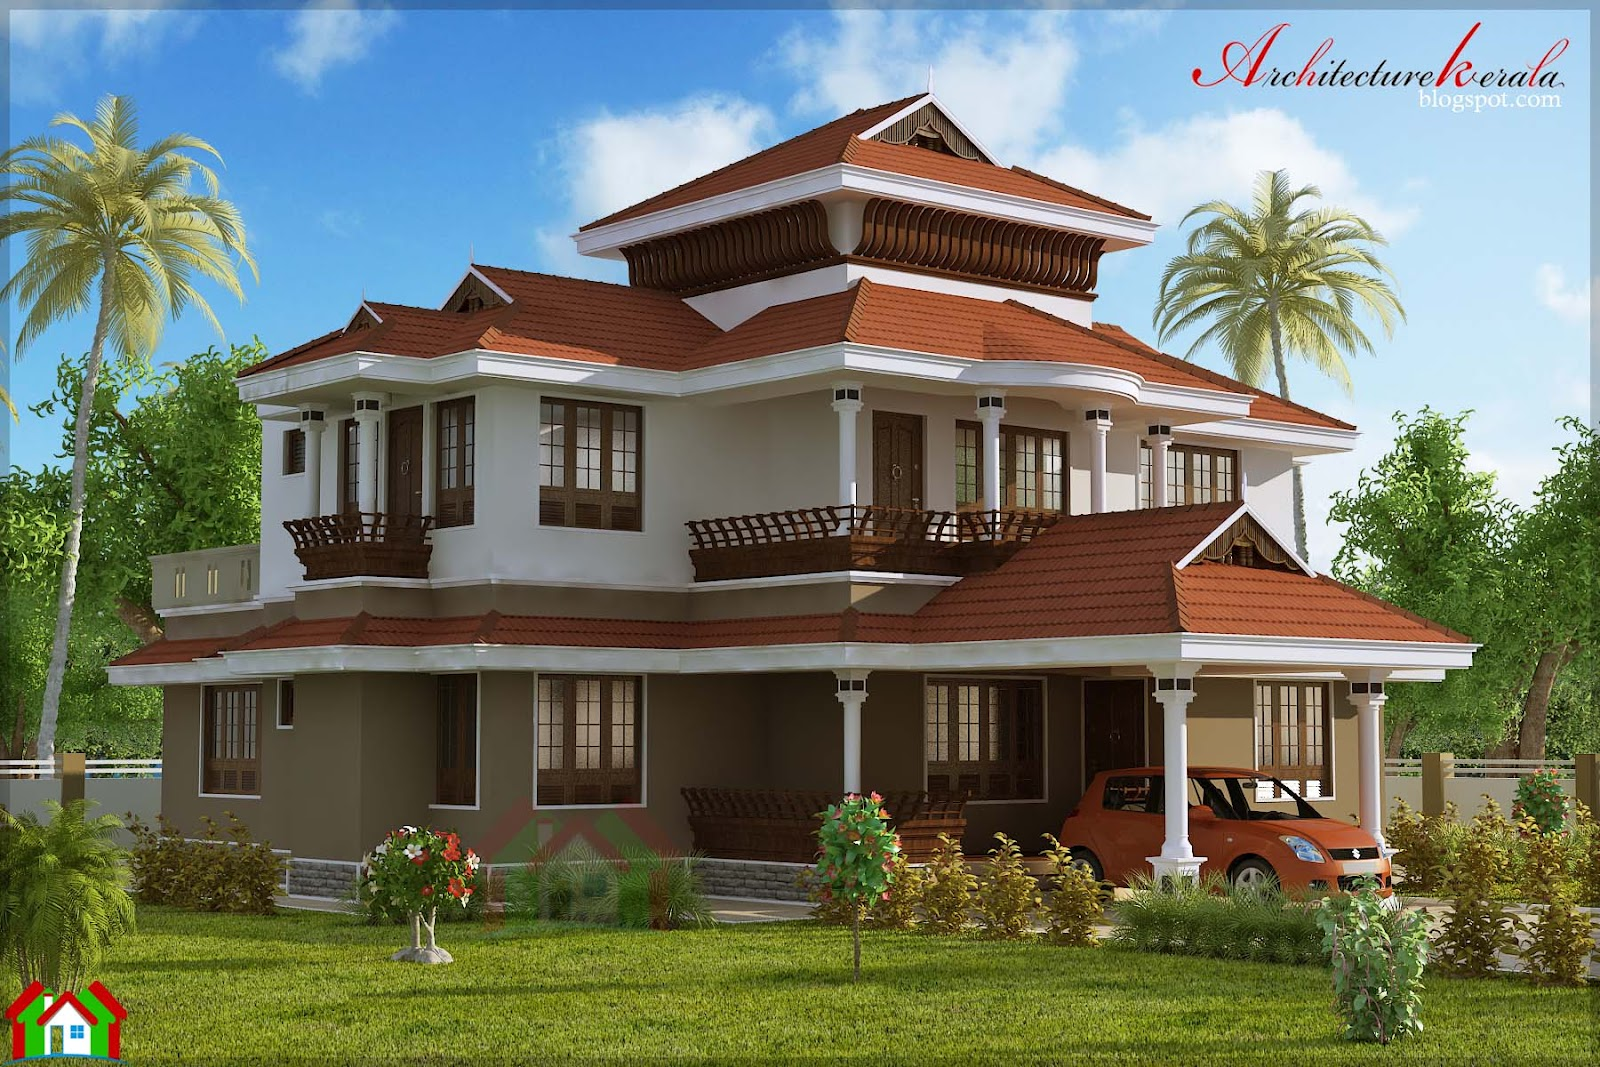 4 bed room traditional style house architecture kerala